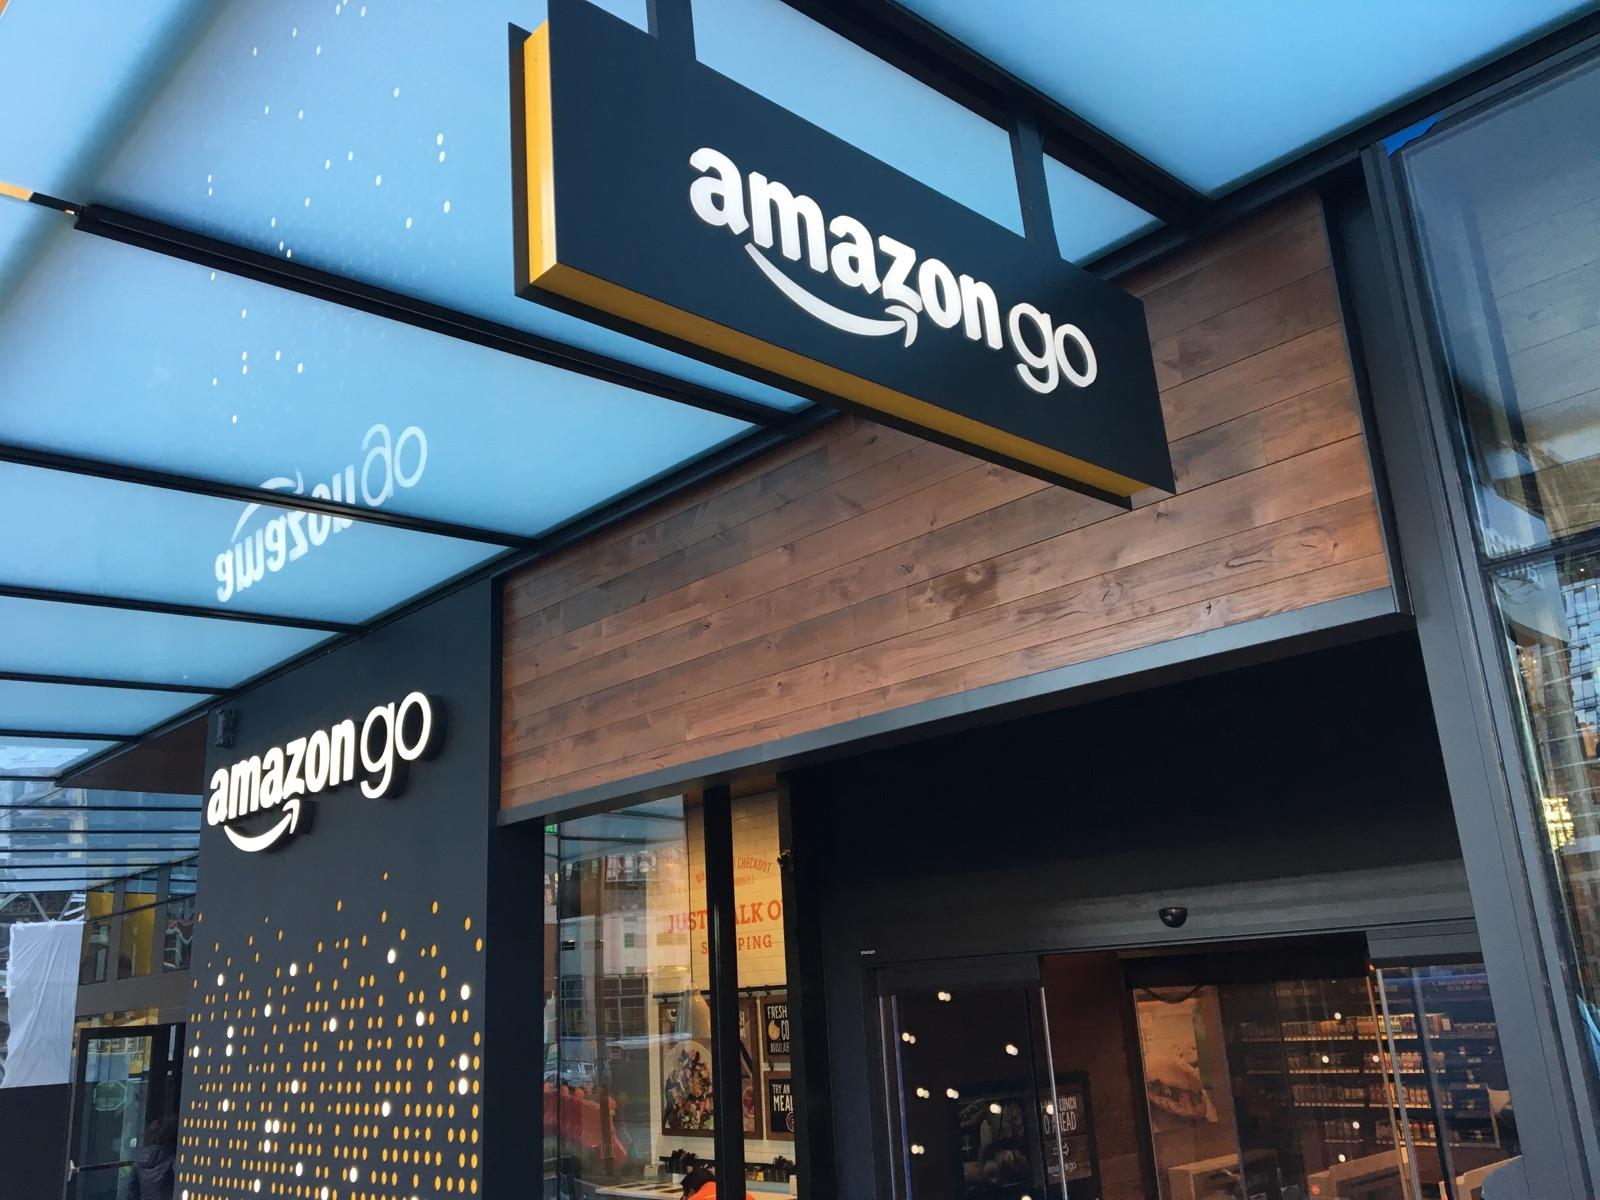 Olympia Cladding, Auburn|Amazon Go, Seattle, WA